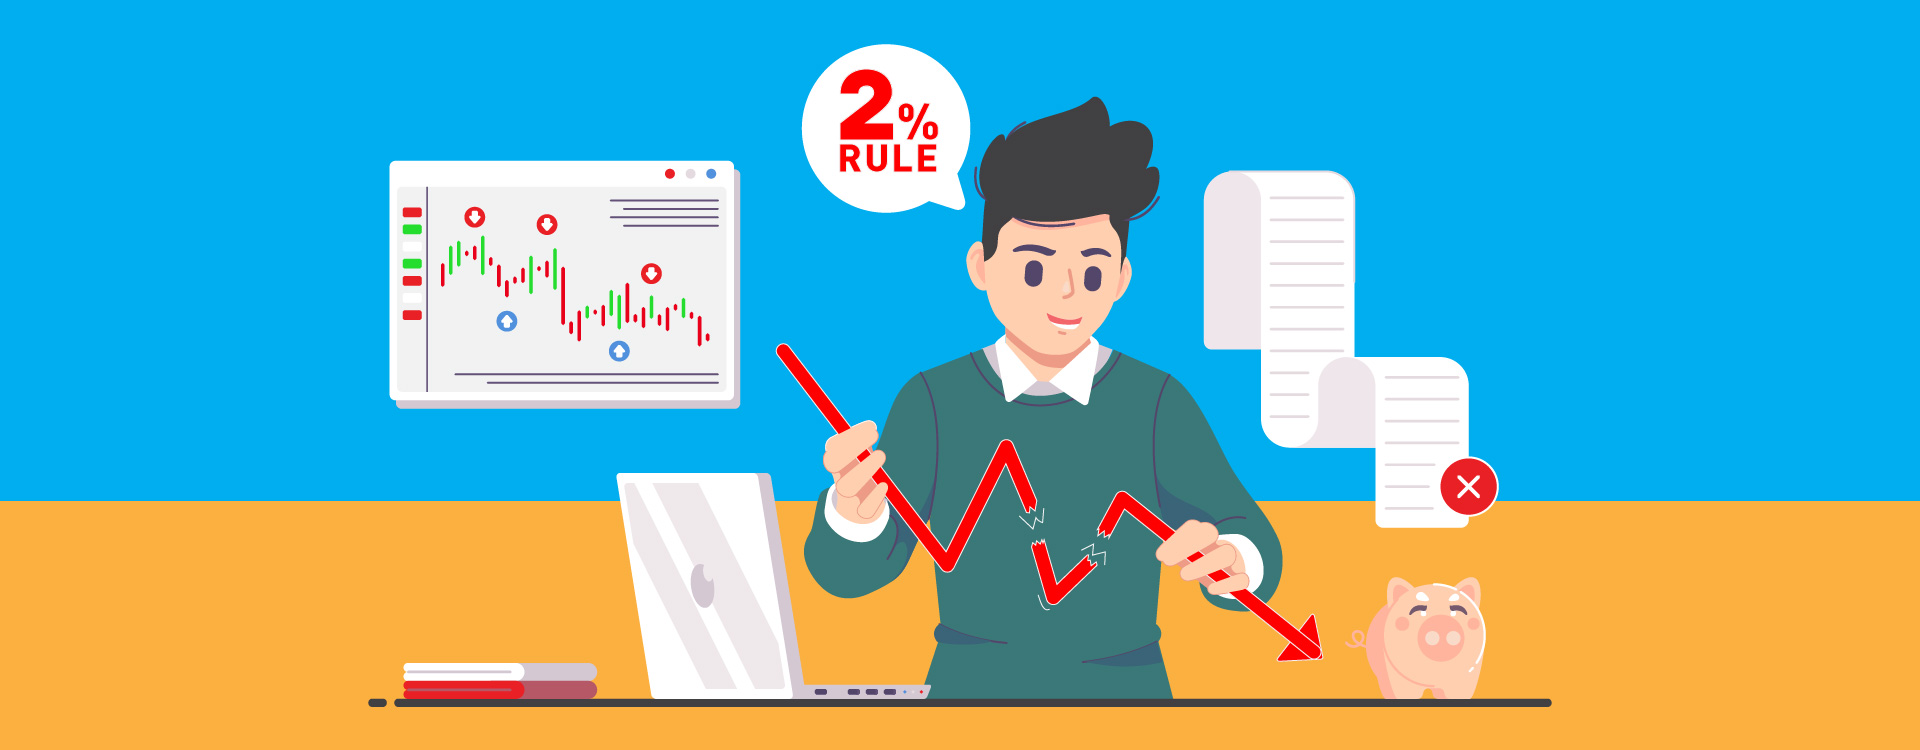 Using 2% rule in the stock market investors can avoid falling in huge risks.